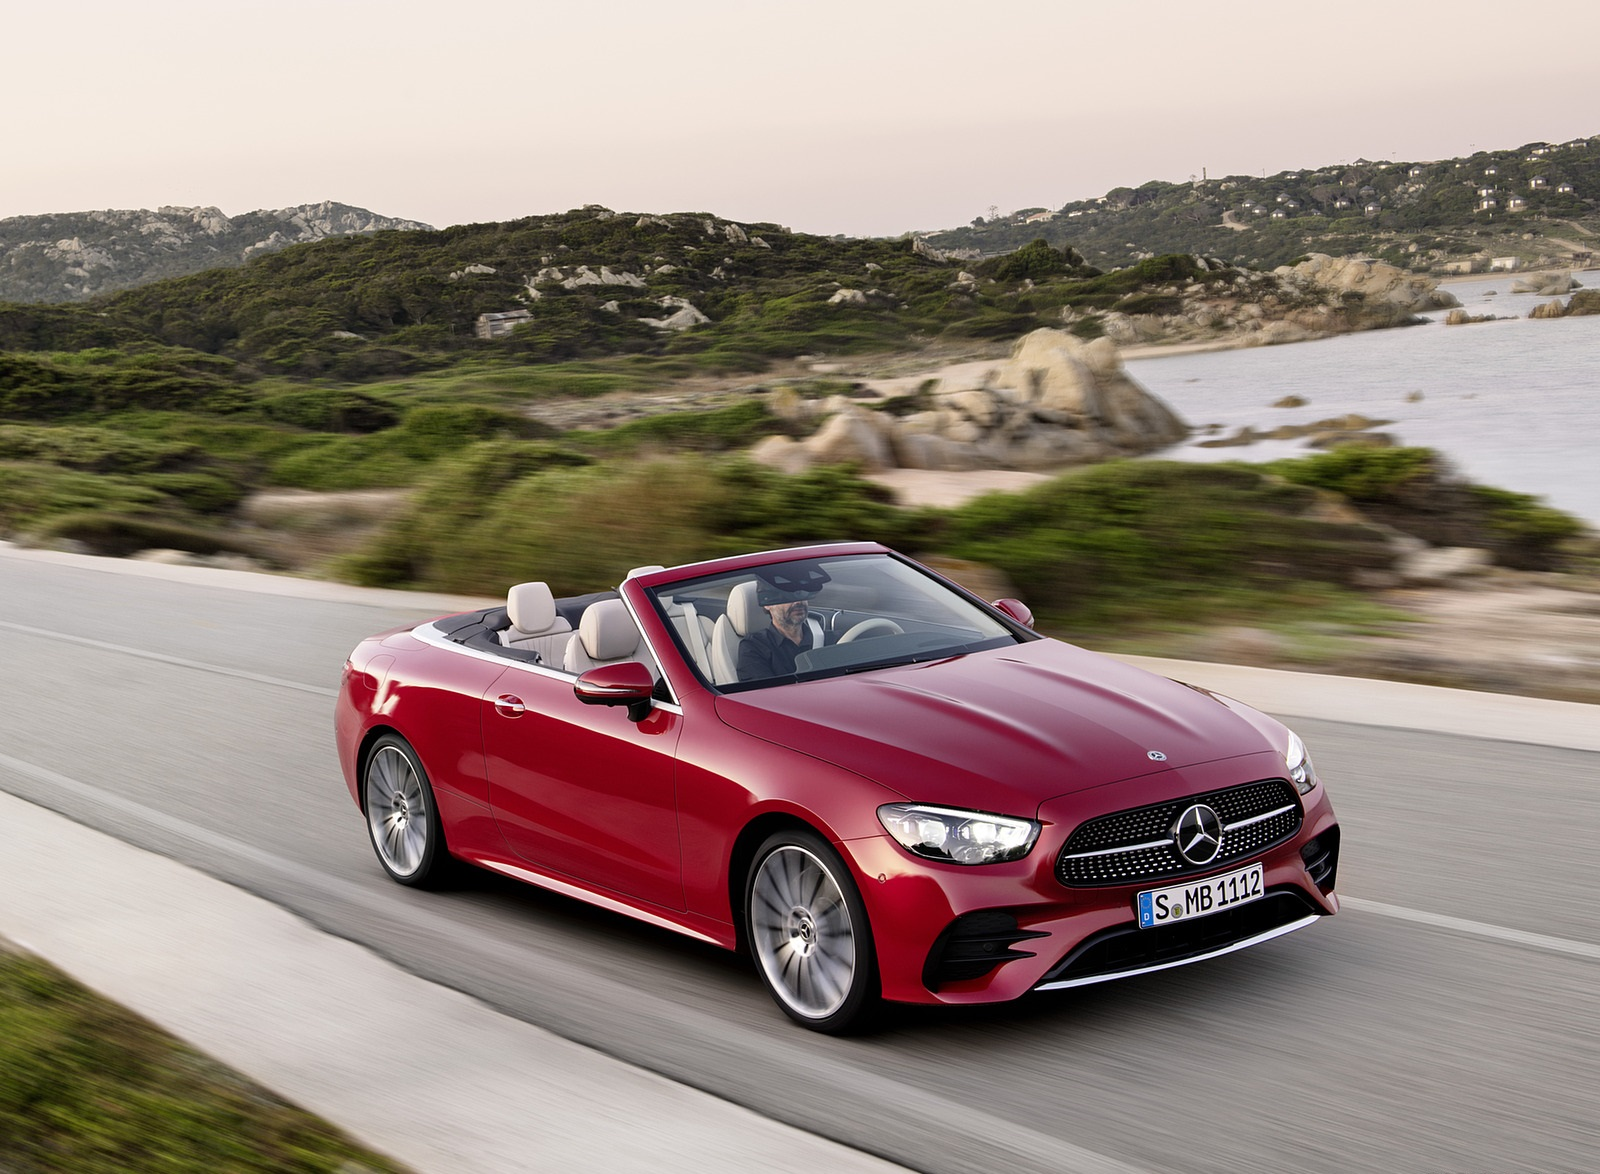 2021 Mercedes-Benz E 450 4MATIC Cabriolet AMG Line (Color: Designo Hyacinth Red Metallic) Front Three-Quarter Wallpapers (3)